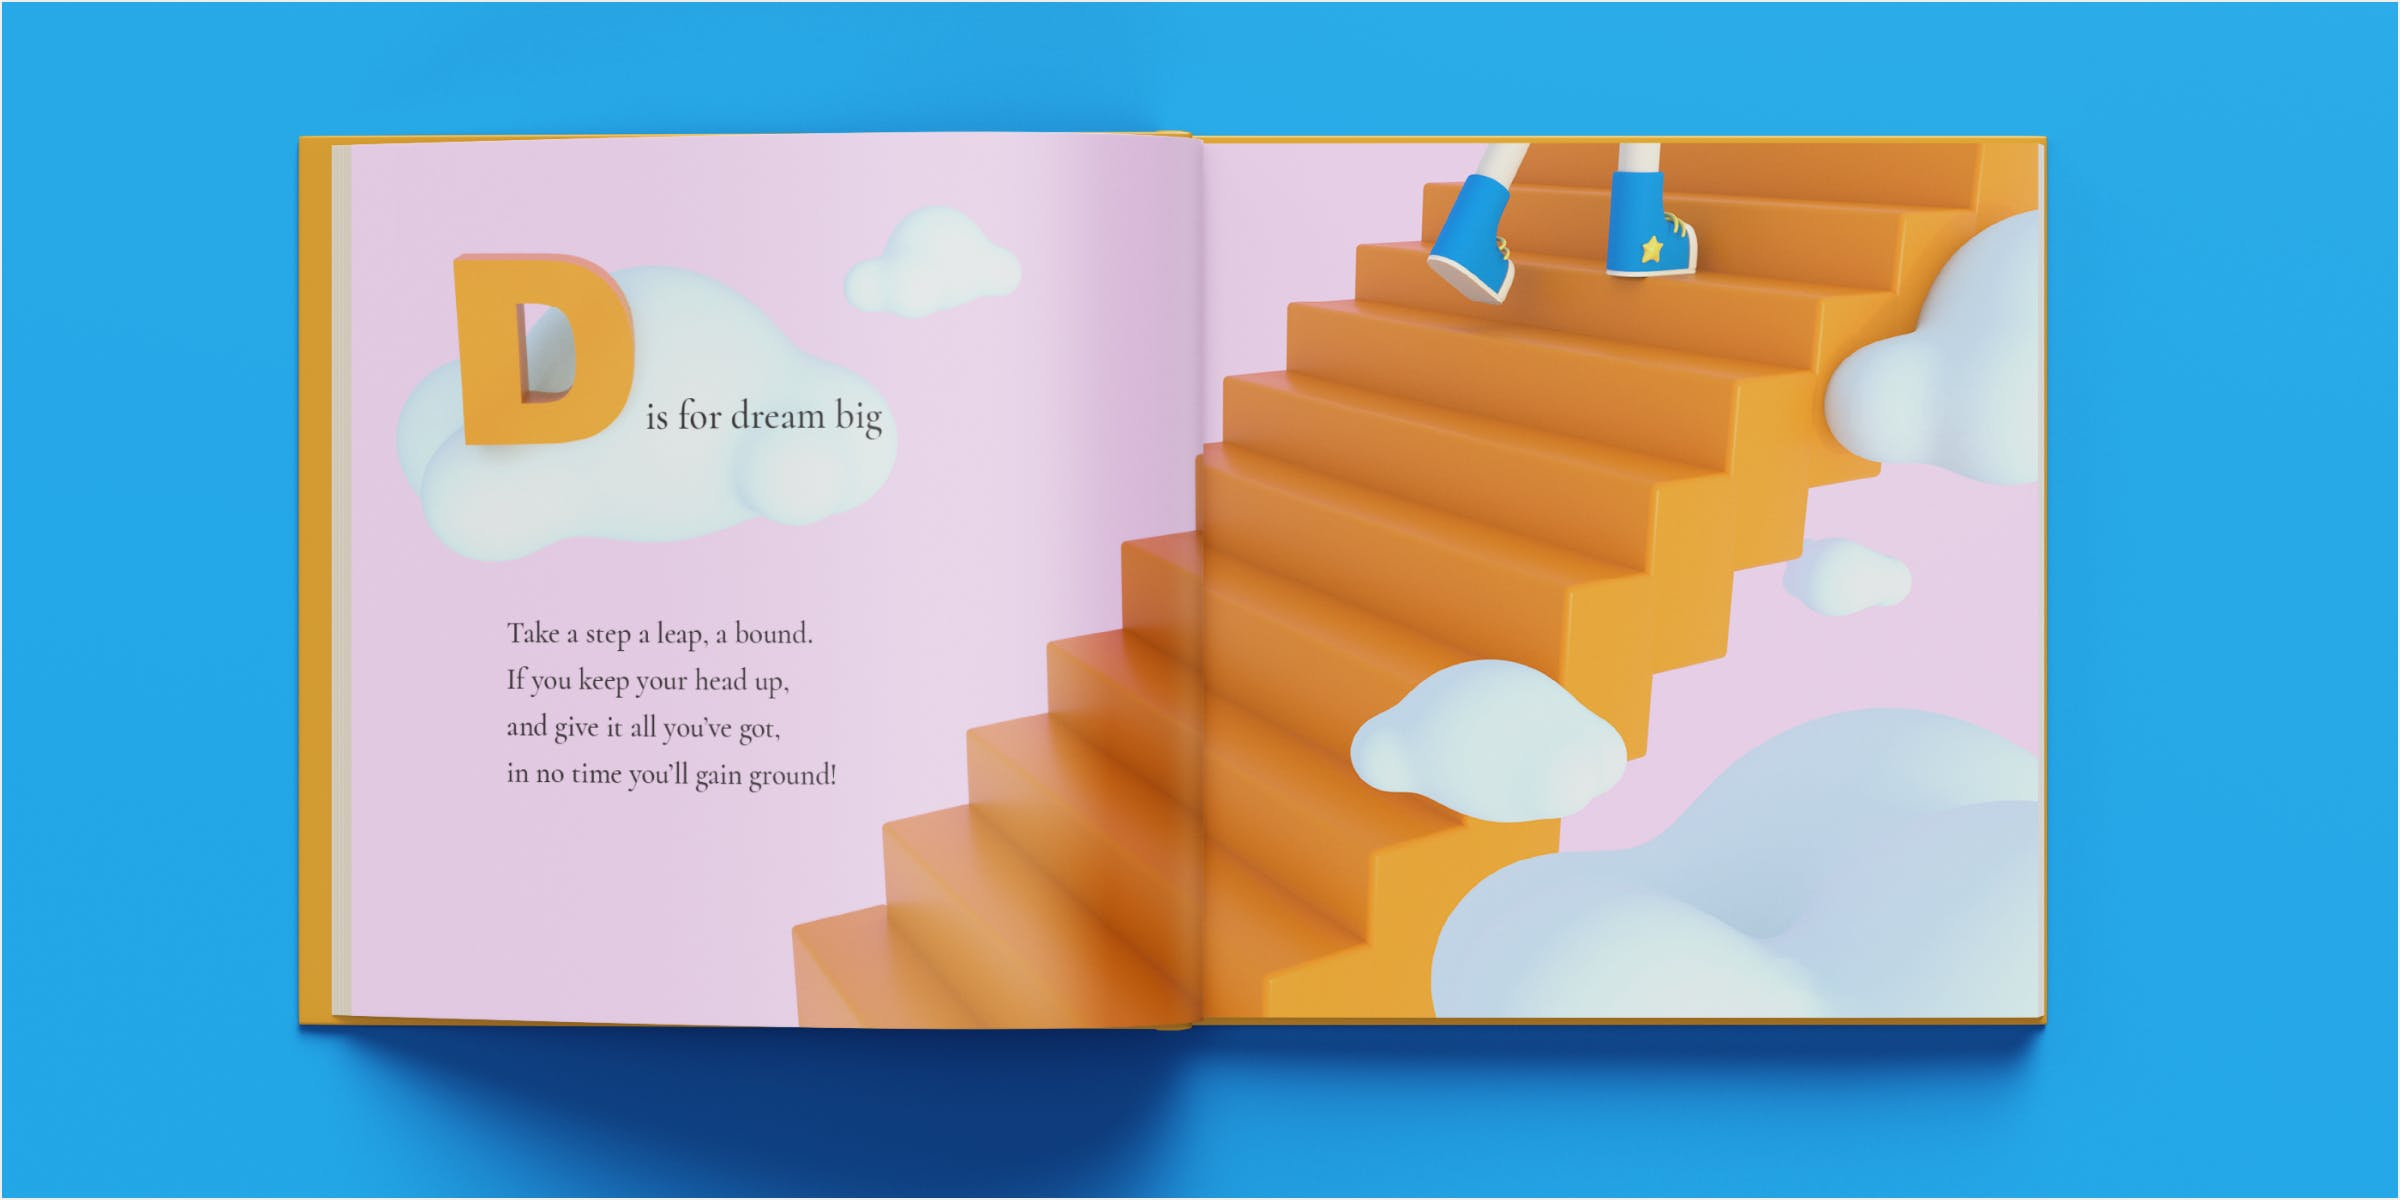 Mockup of dream big spread in a book. Shoes are seen ascending stairs surrounded by big fluffy clouds